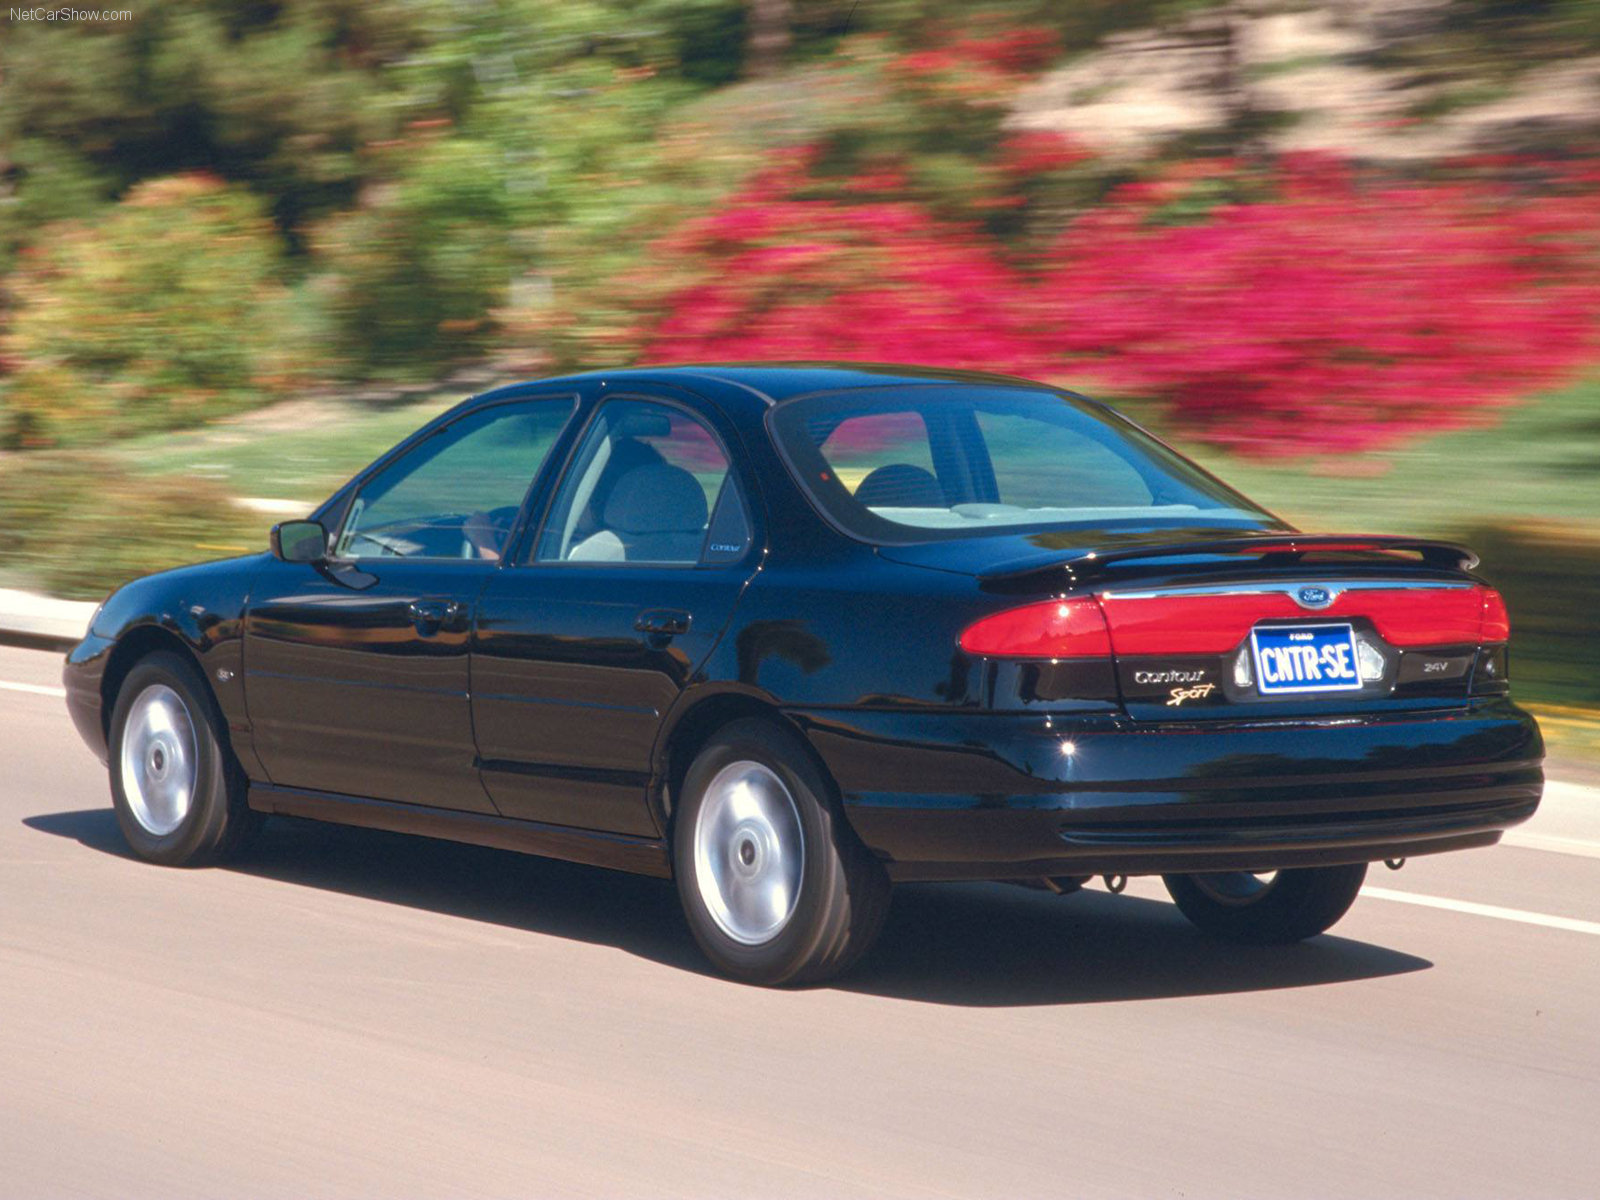 Ford Contour Photos Photogallery With 15 Pics Carsbase Com